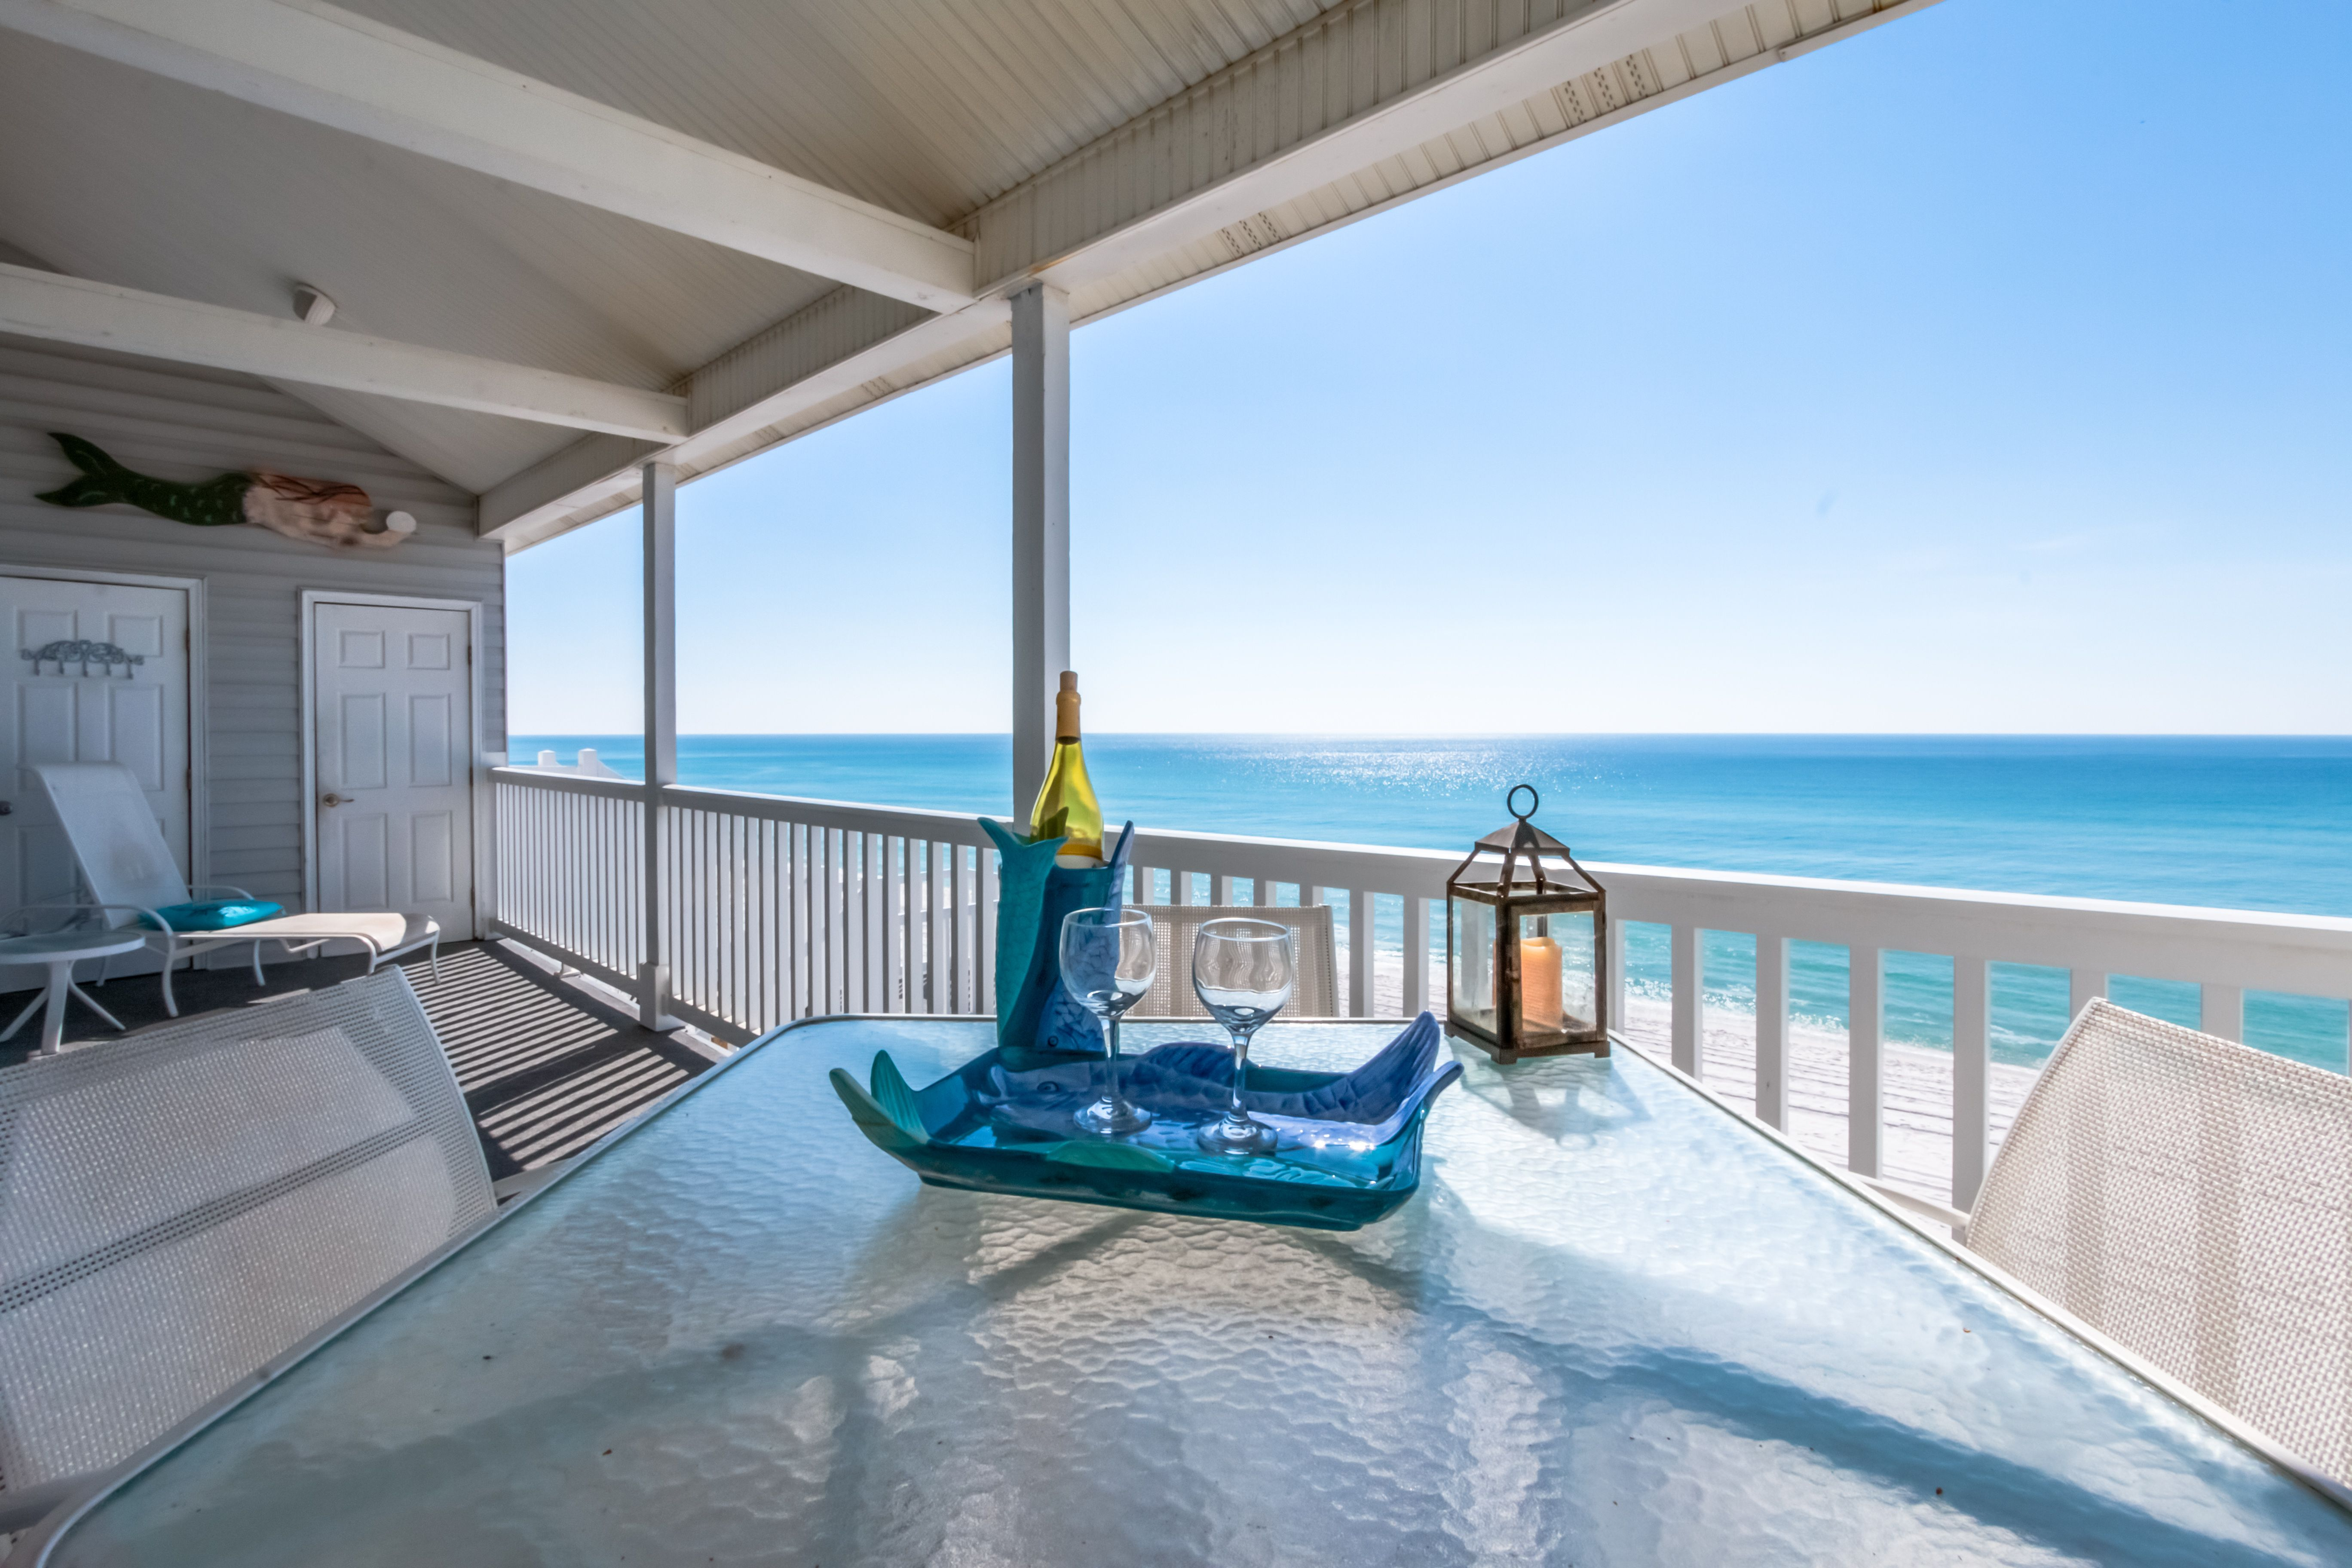 Panama City Beach Florida Is Home To The World S Most Beautiful Beaches And The Most S Florida Beach House Rentals Panama City Beach Condos Beach House Rental